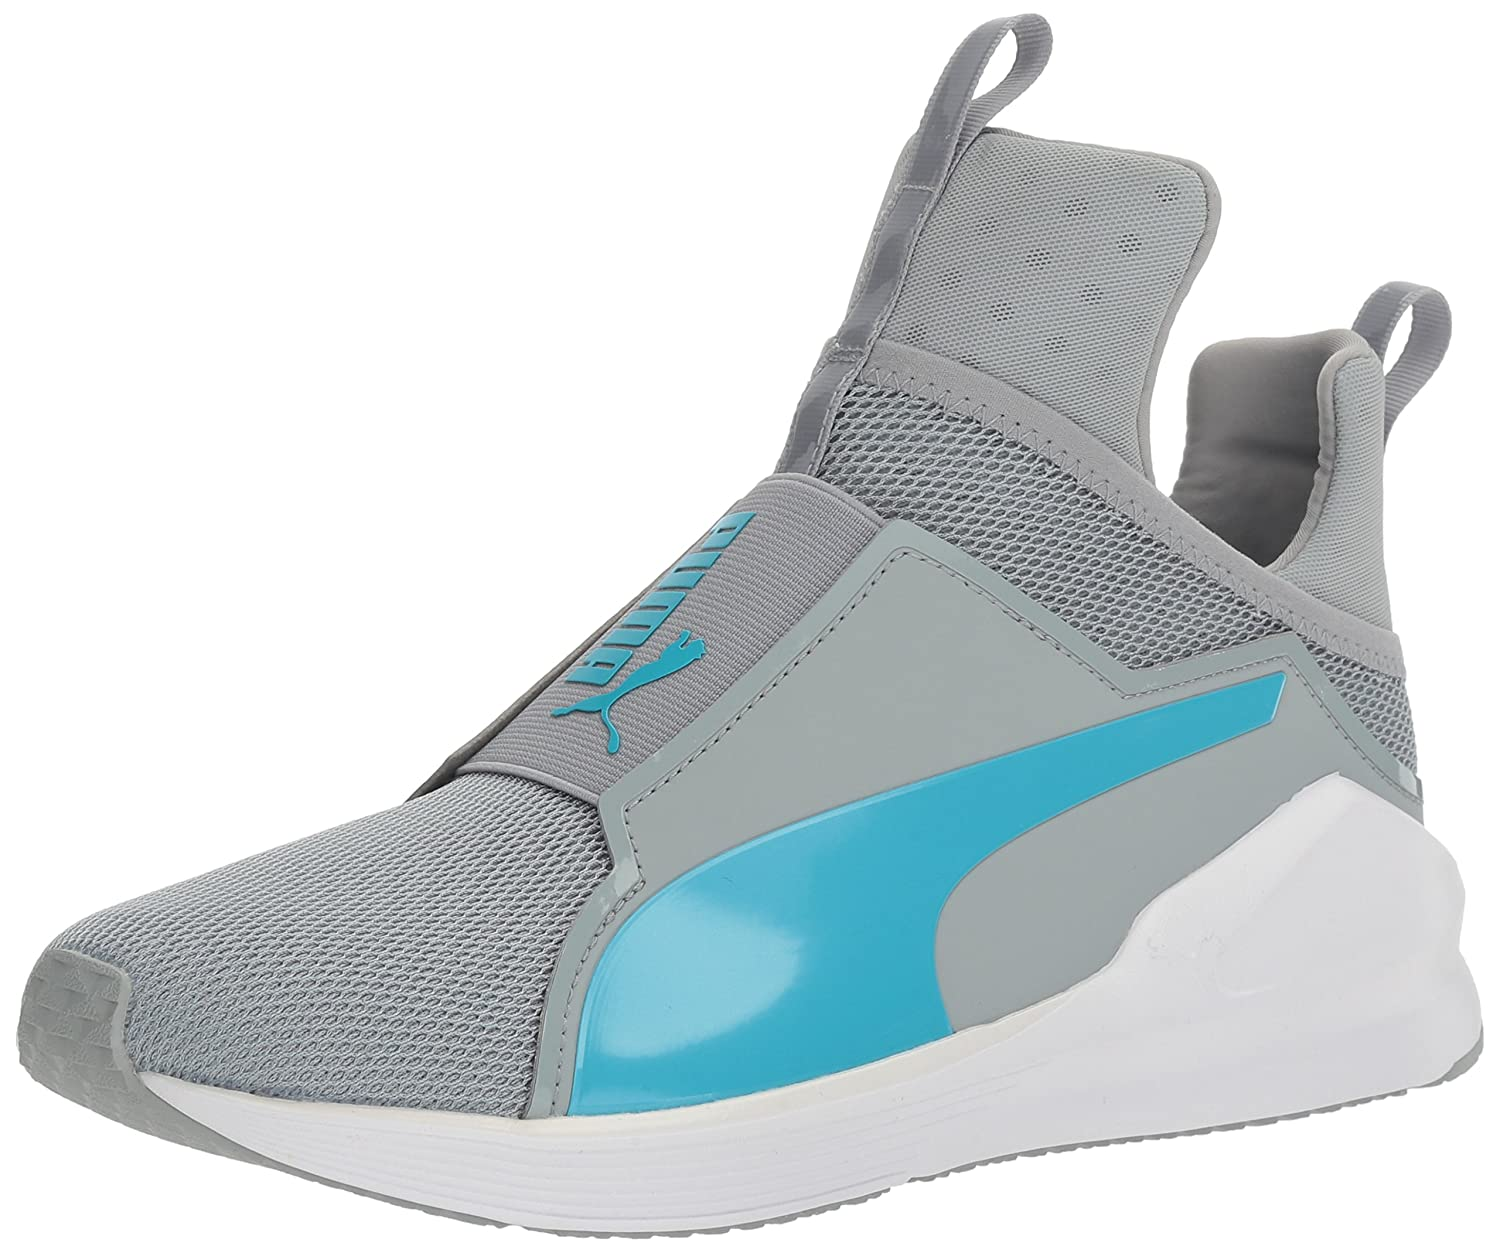 PUMA Women's Fierce Core Cross-Trainer Shoe B01J5RVKCA 6.5 M US|Quarry-blue Atoll